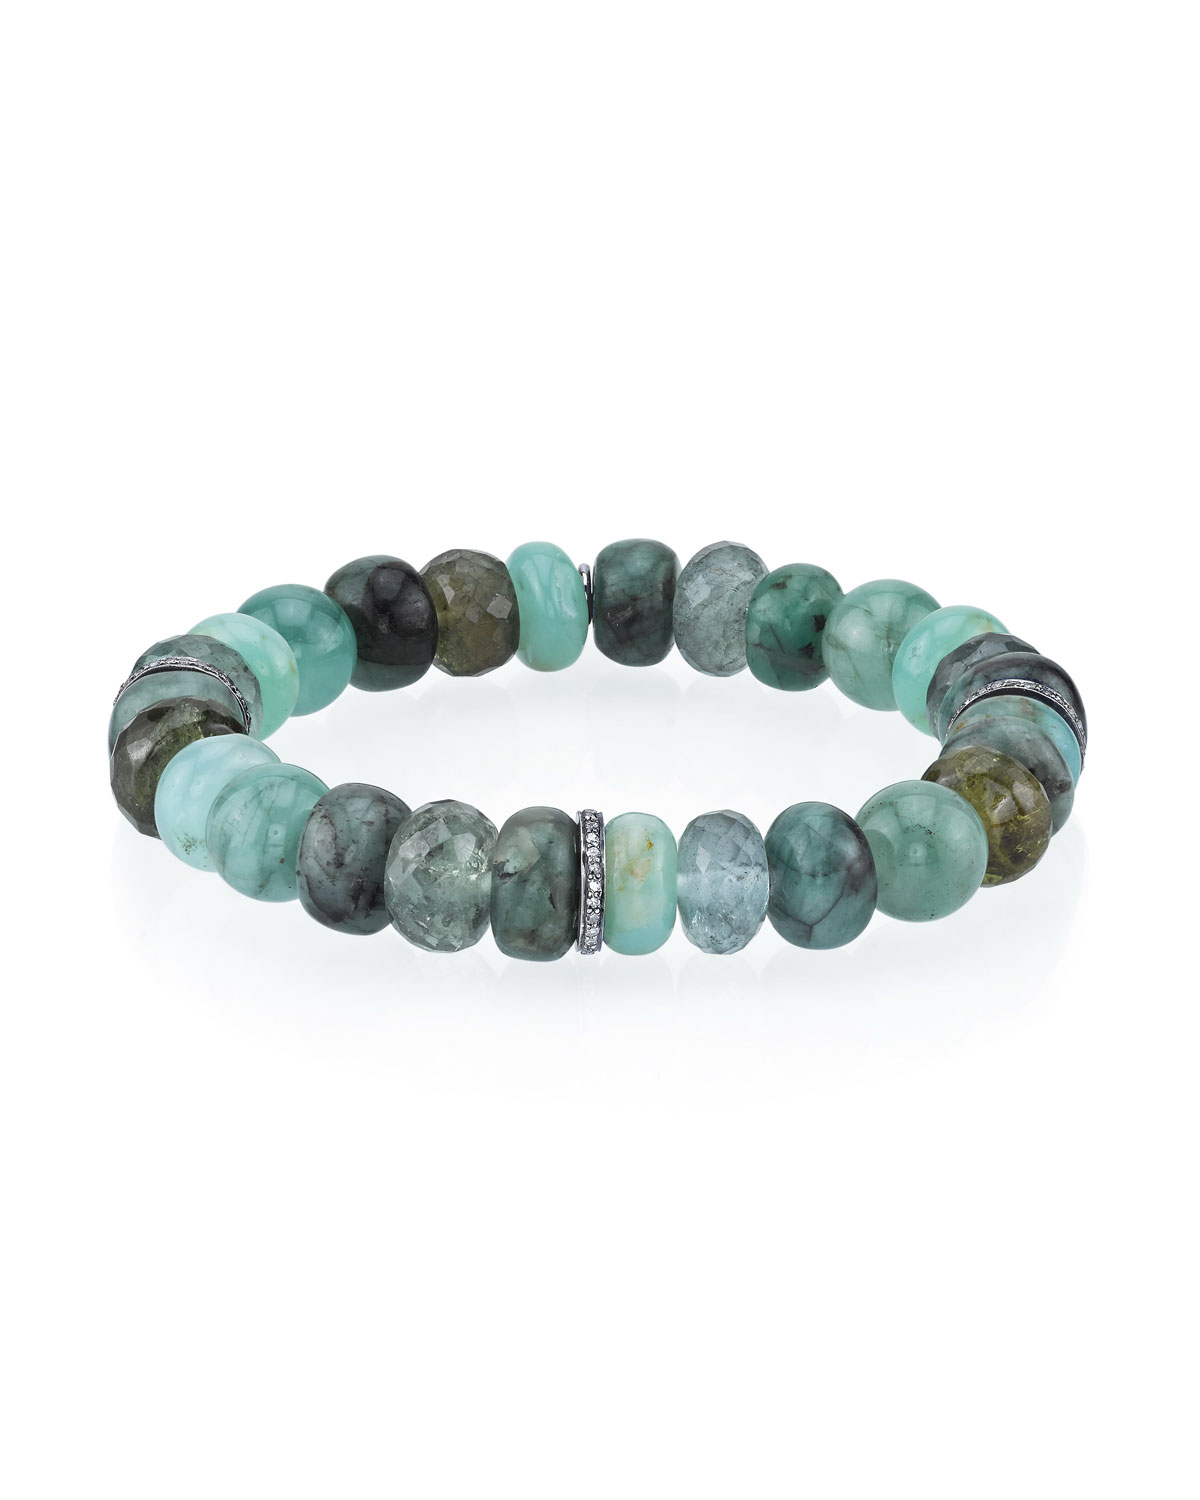 Sheryl Lowe 12mm Malachite Bead Bracelet with 5 Diamond Rondelles